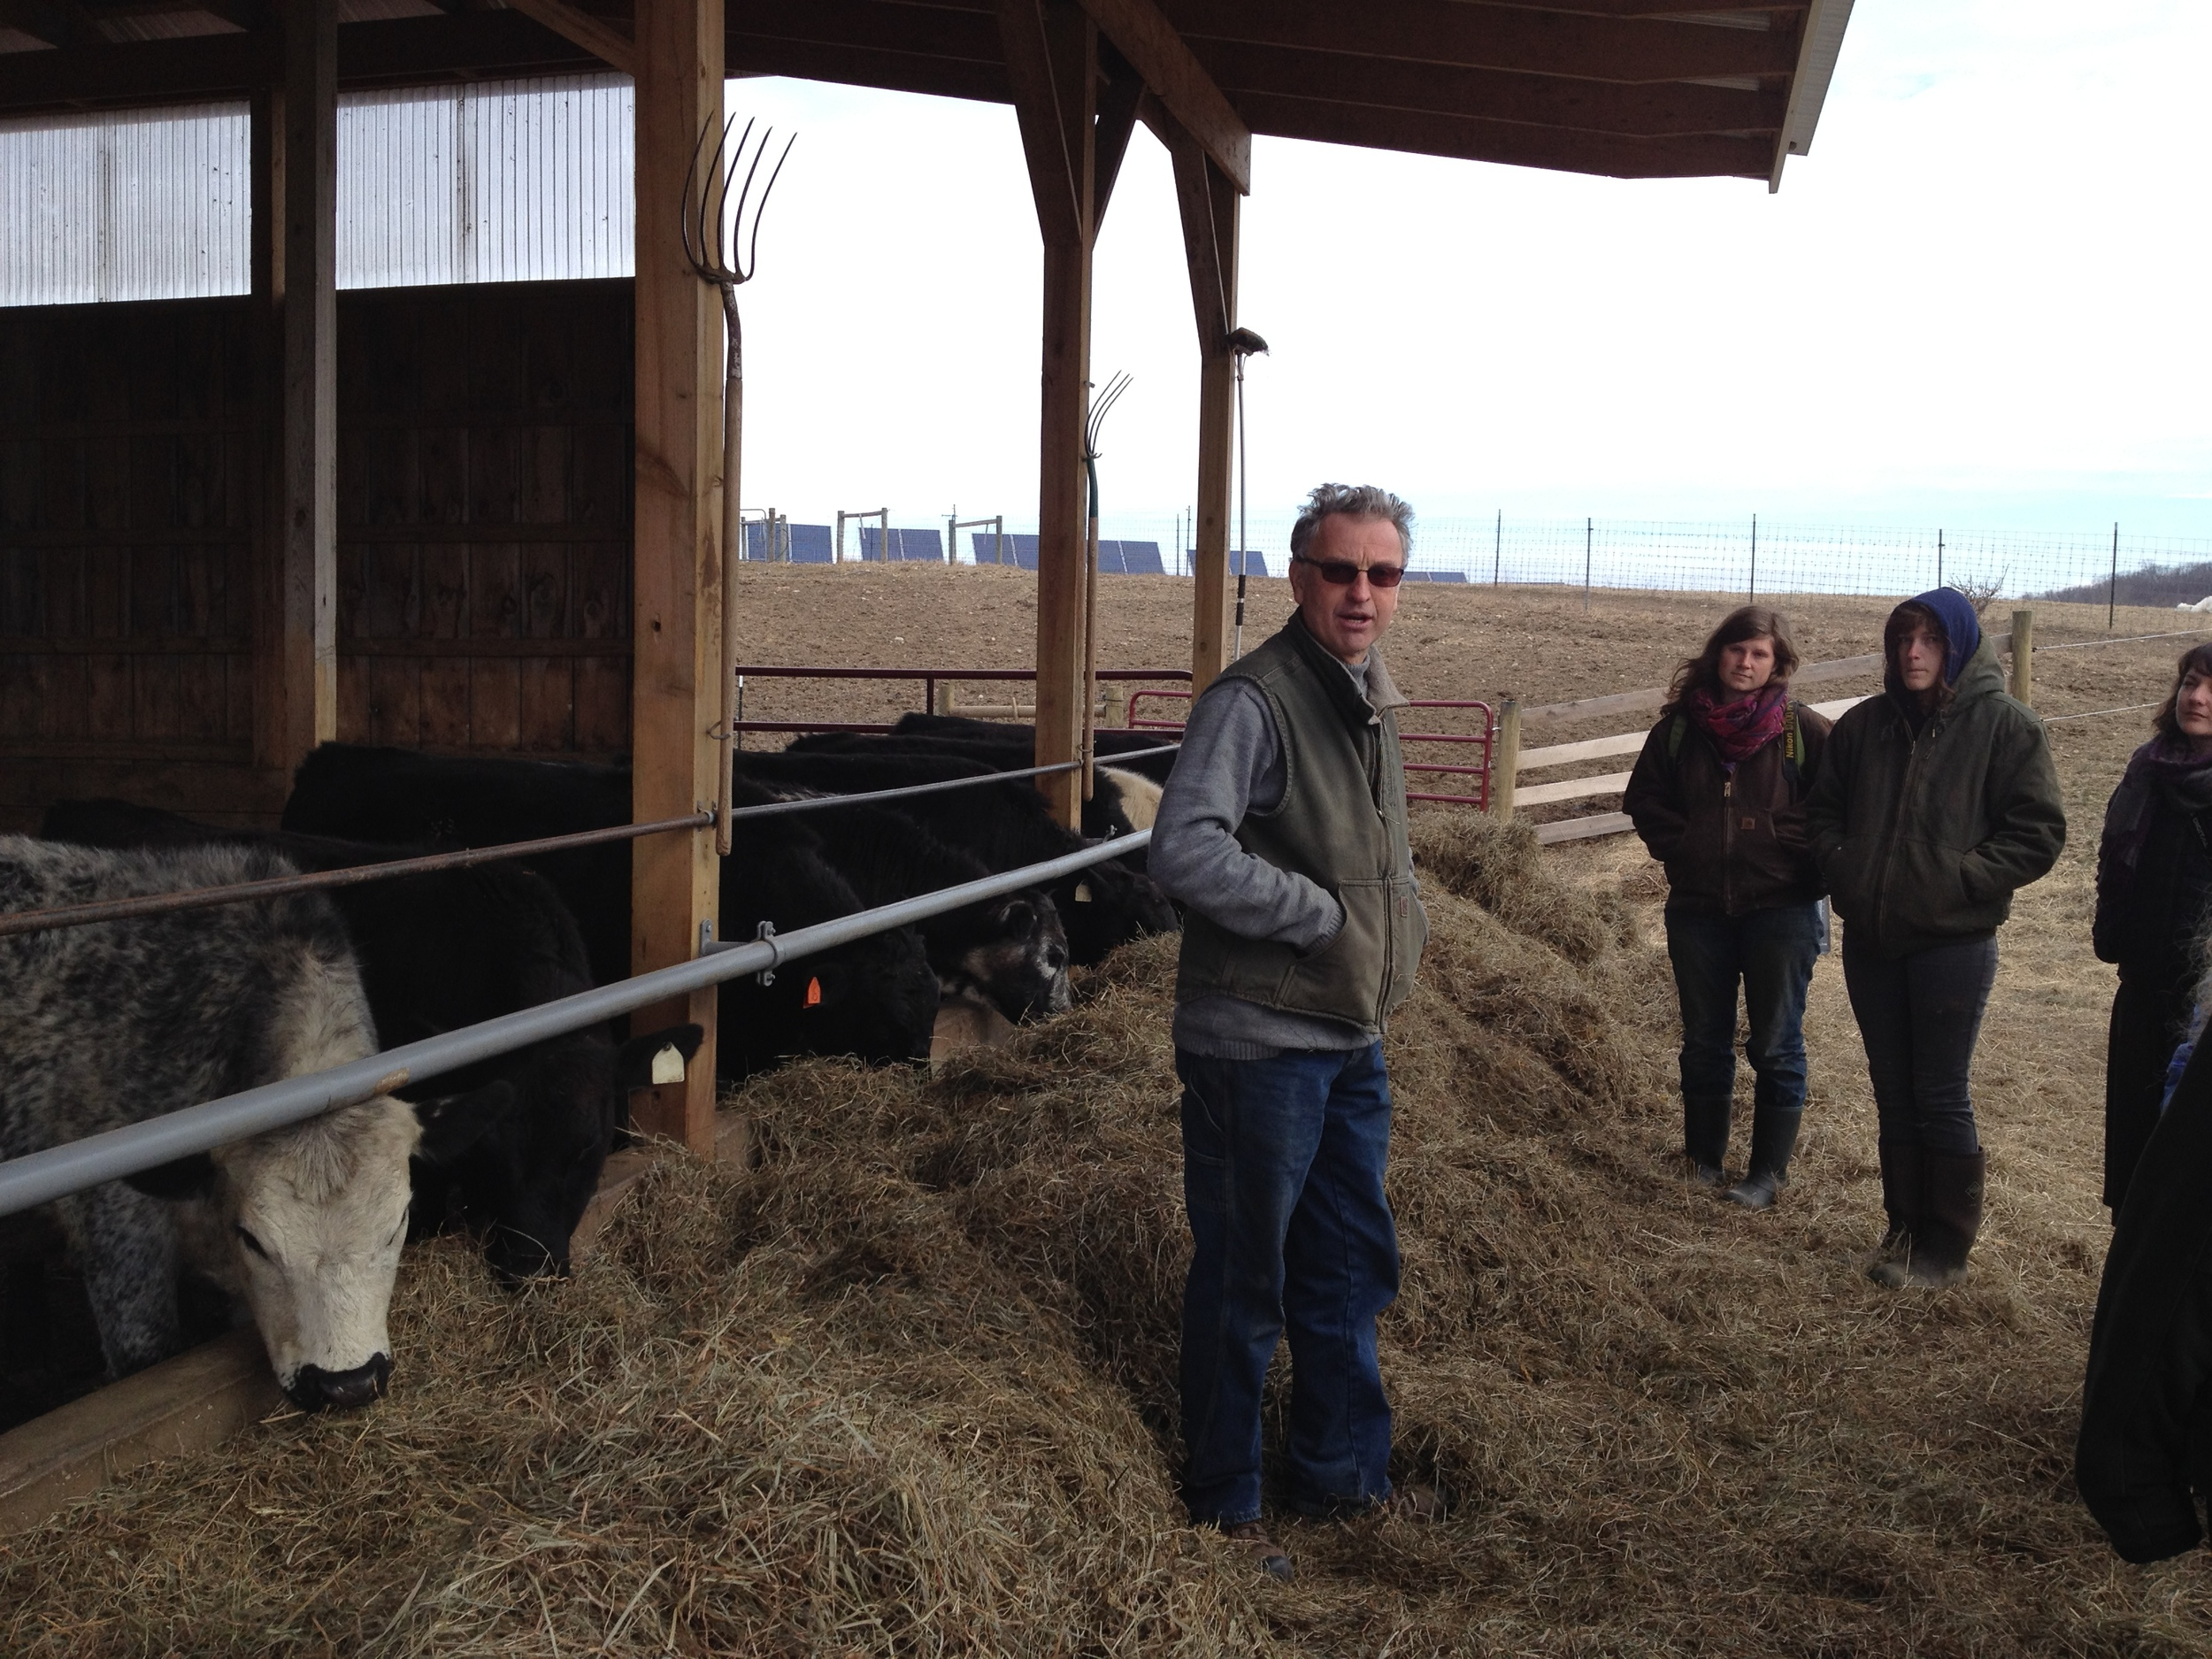 Jean-Paul Courtens chats with us about how cows improve the soil fertility at Roxbury Farm.